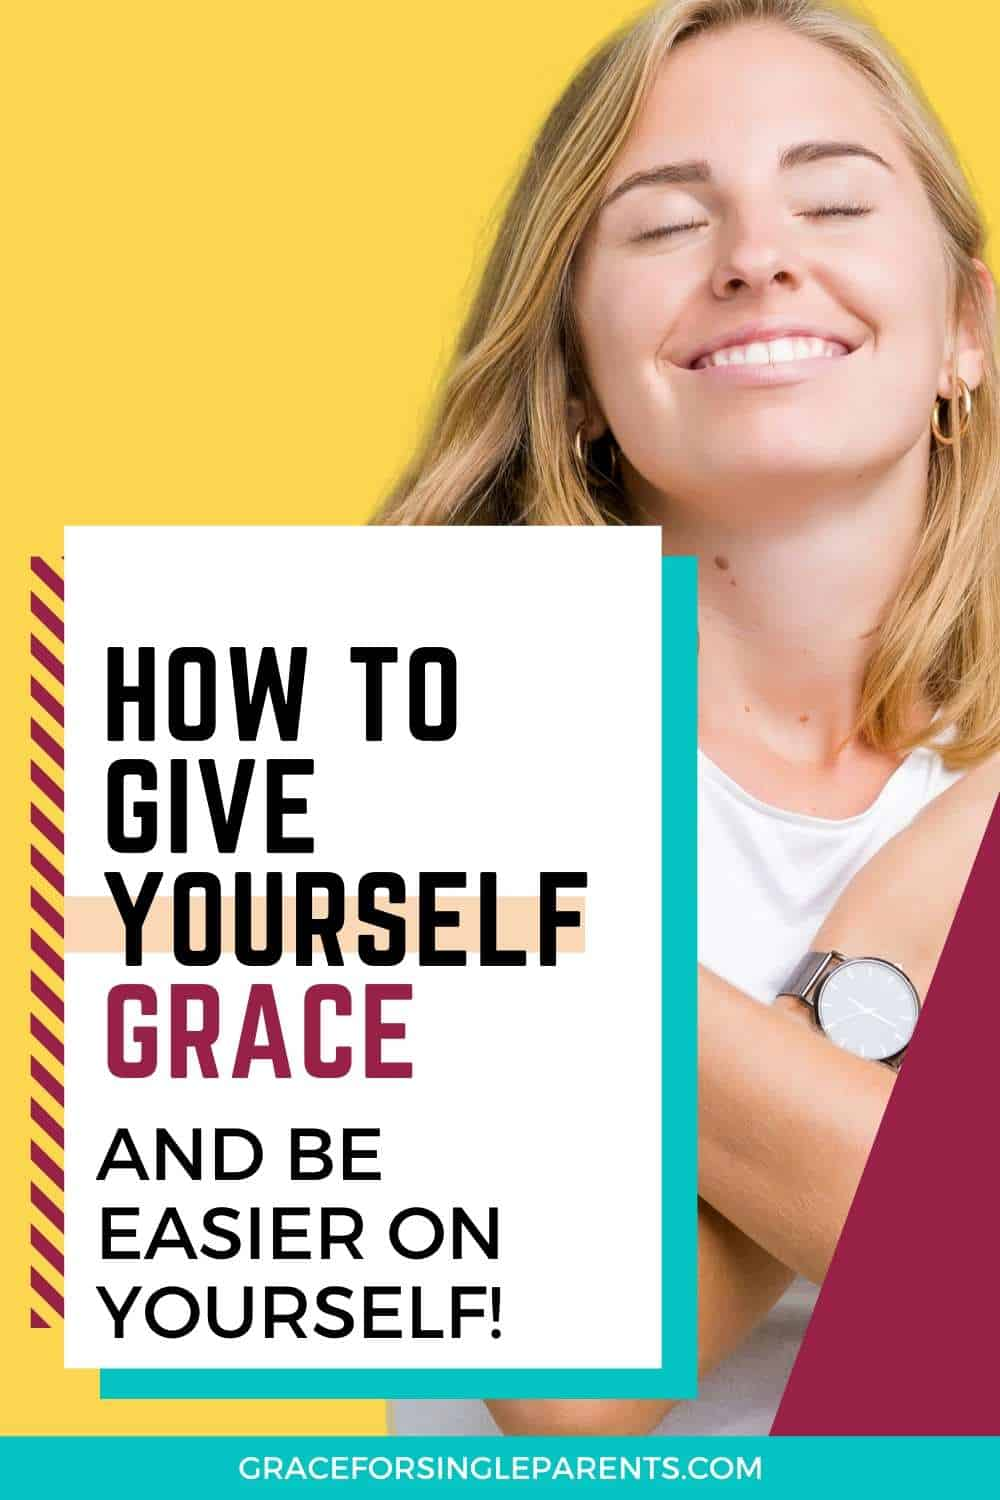 How to Be Easier on Yourself and Give Yourself Grace